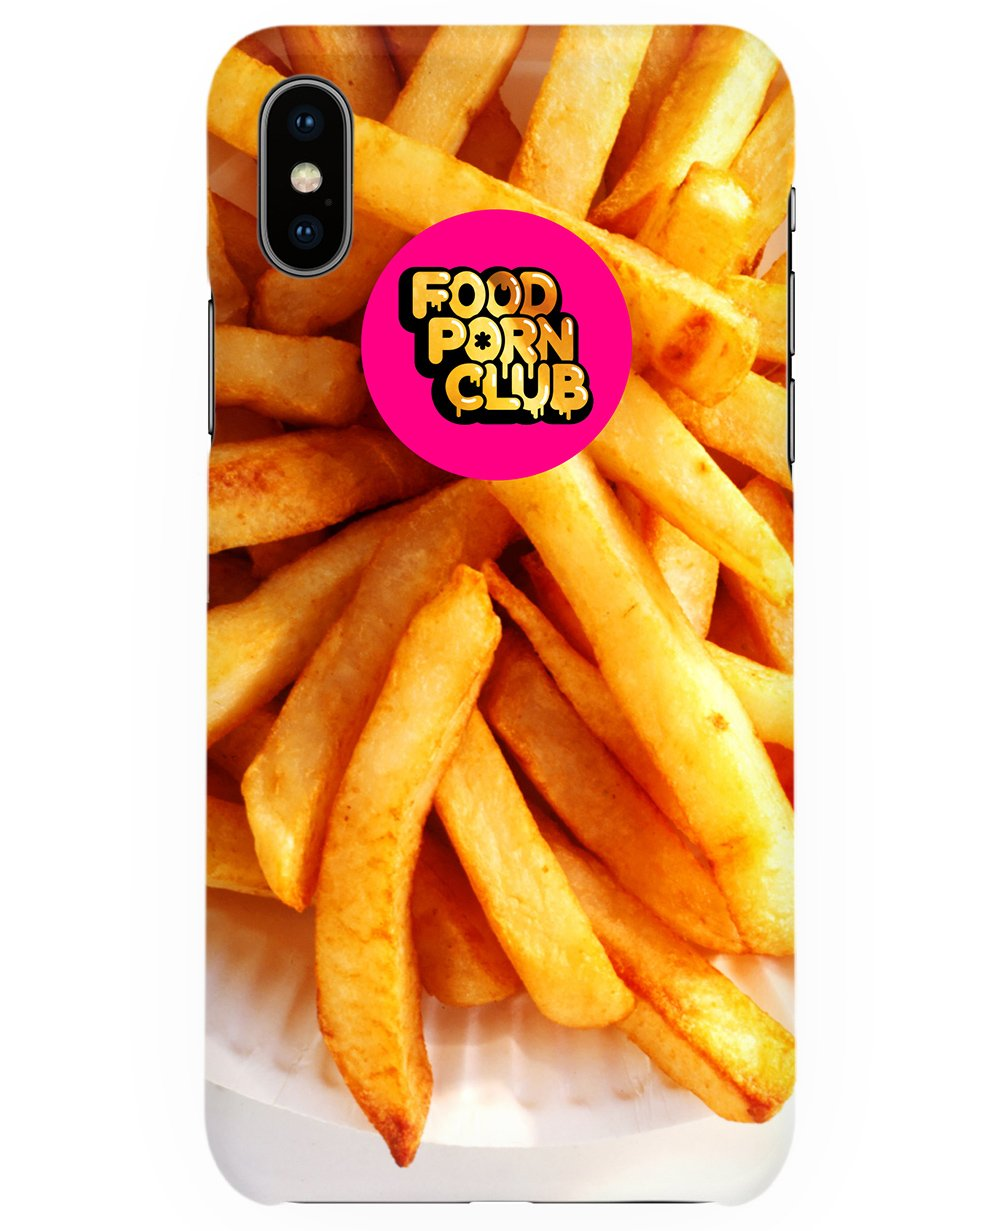 Fries Print Iphone Case - Phone cases - FOOD PORN CLUB - BRANMA